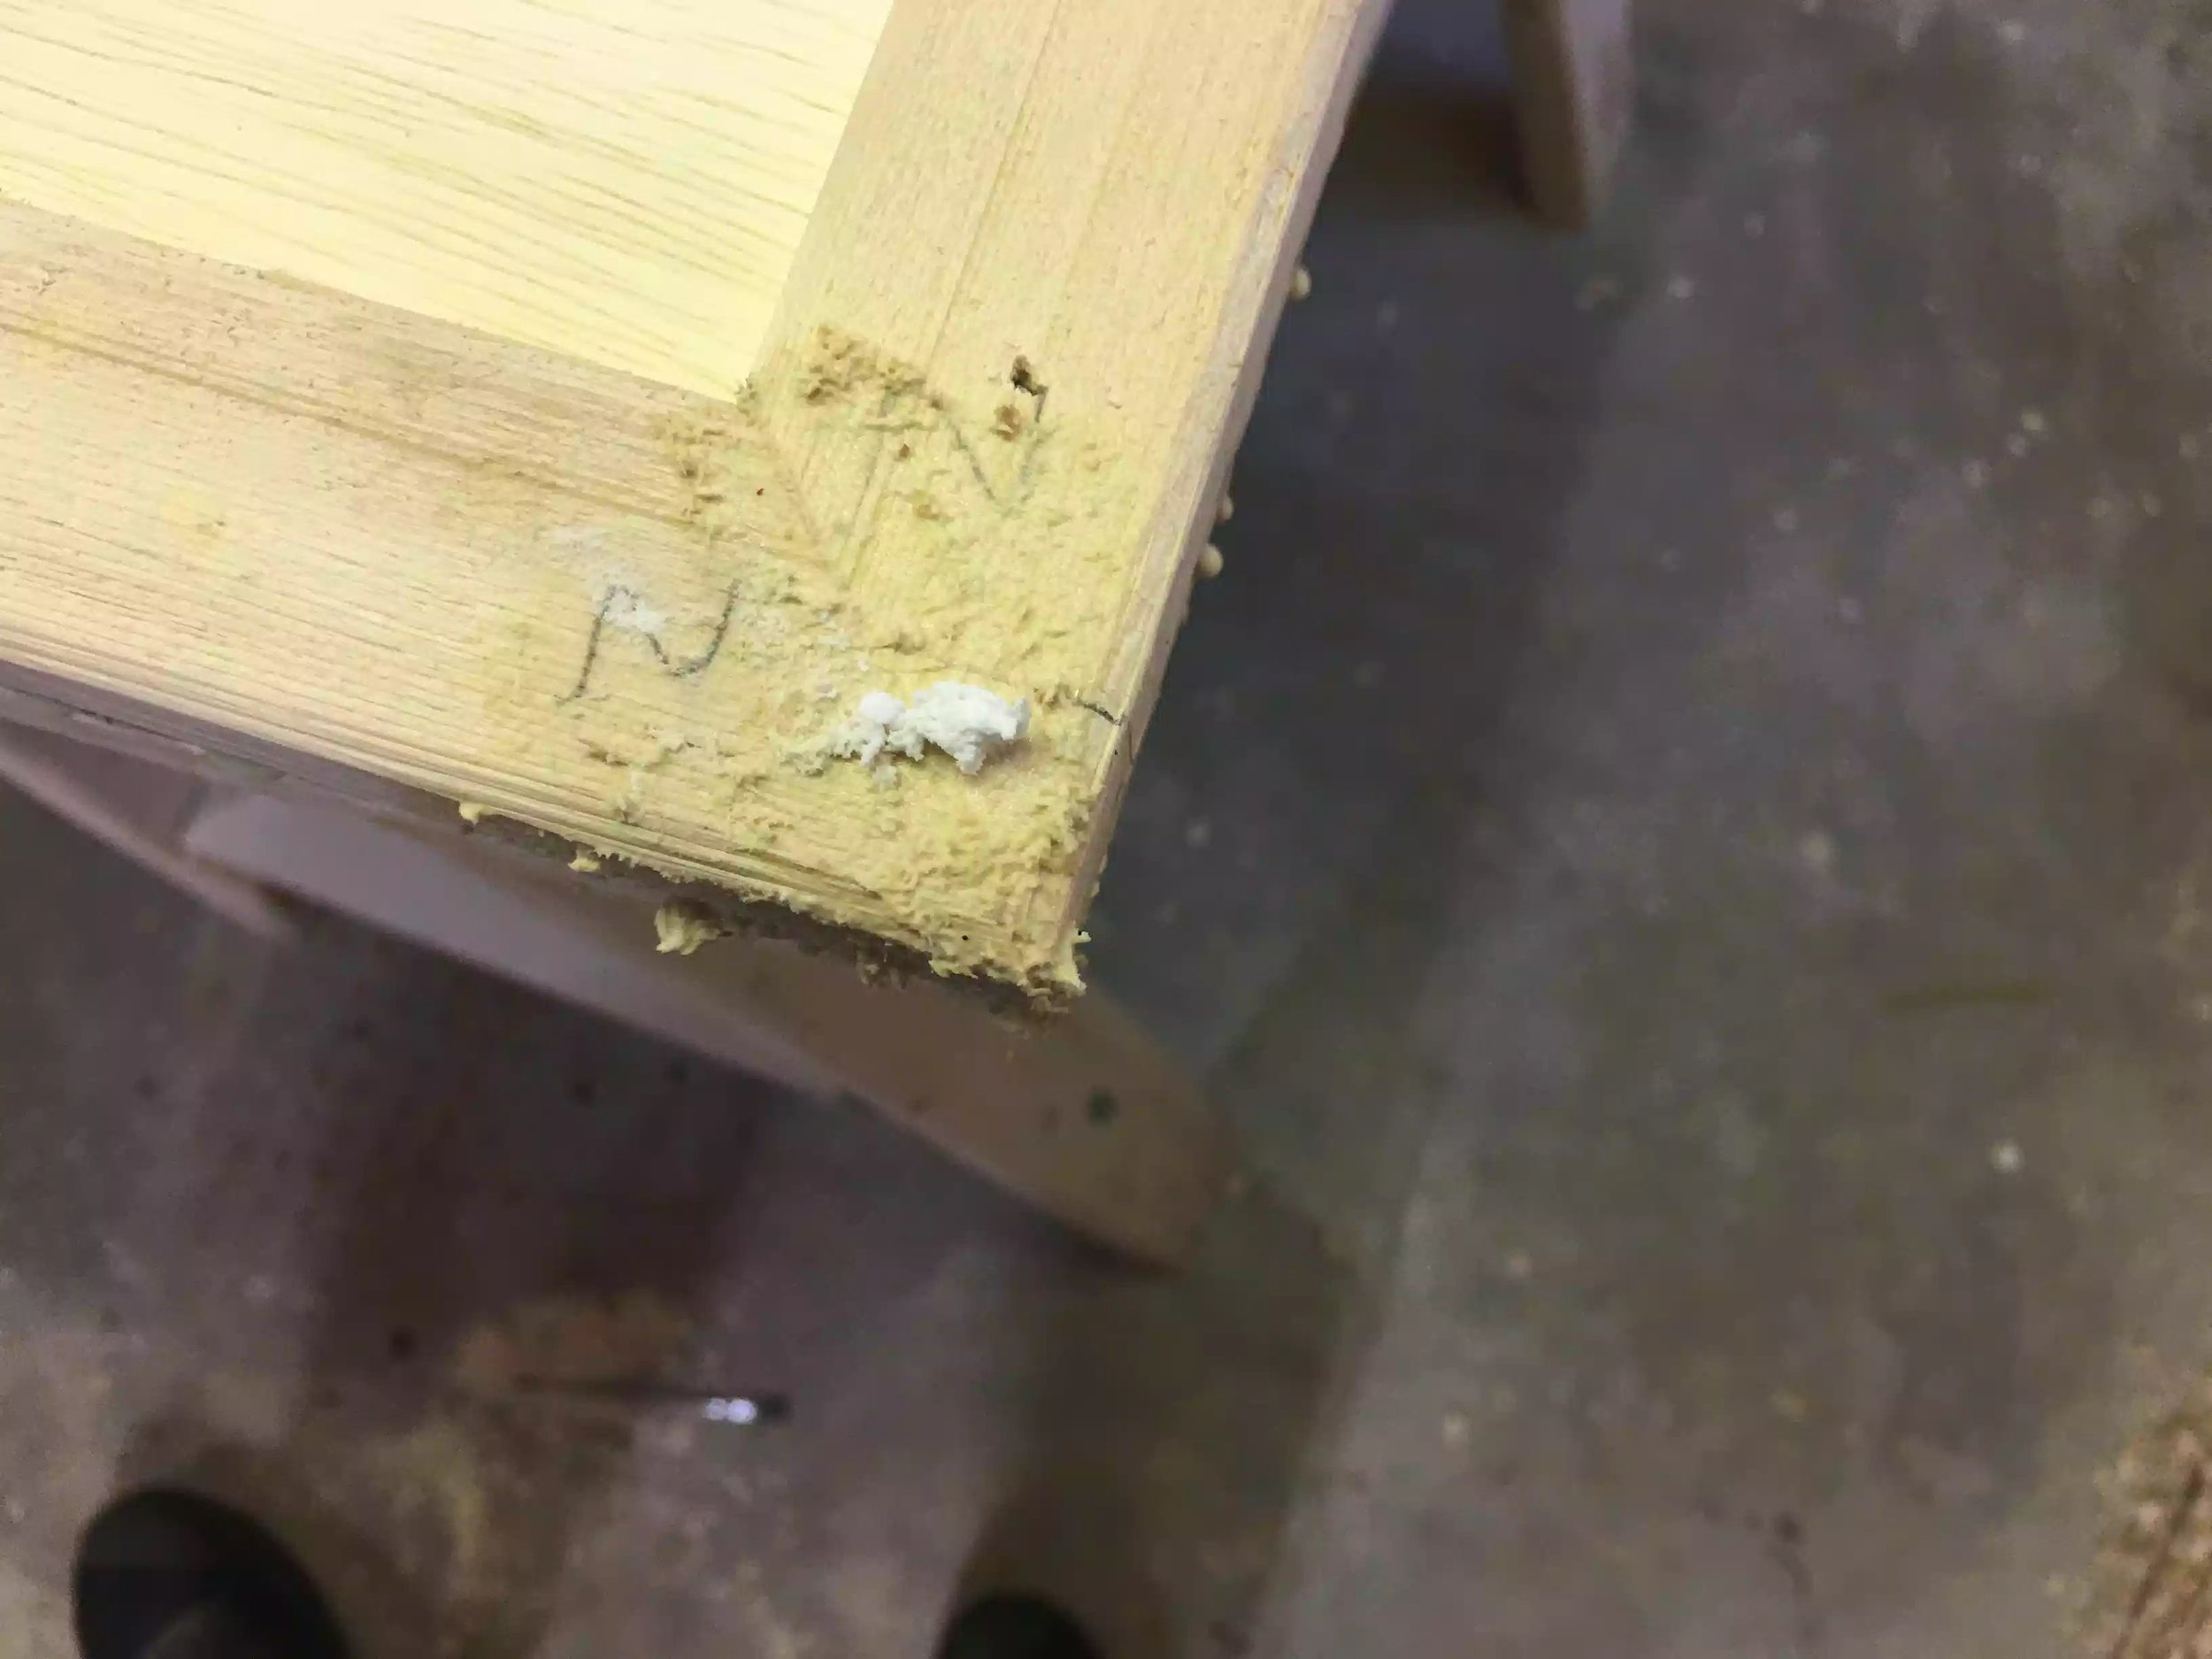 Here is the joint after I have applied the wood paste, i will clean it up tomorrow.